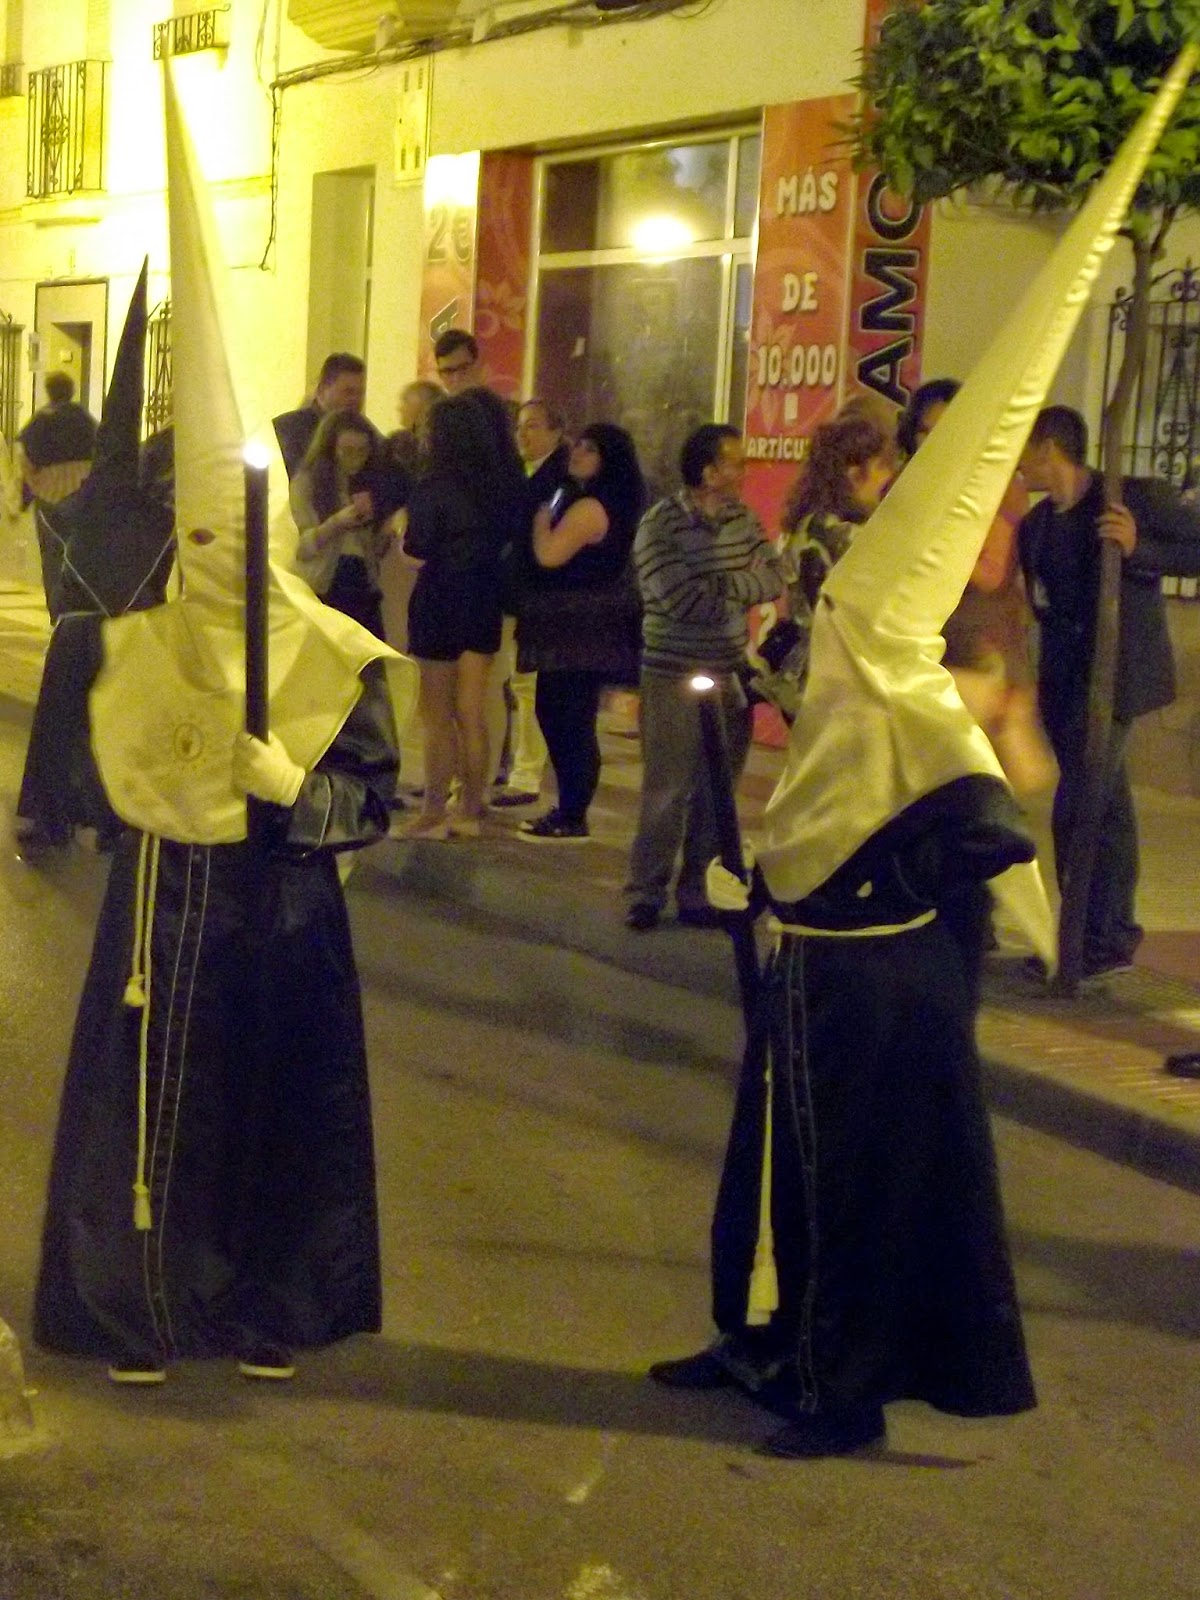 Holy Week, Passion Week, Semana Santa Malaga Processional Good Friday Penitents